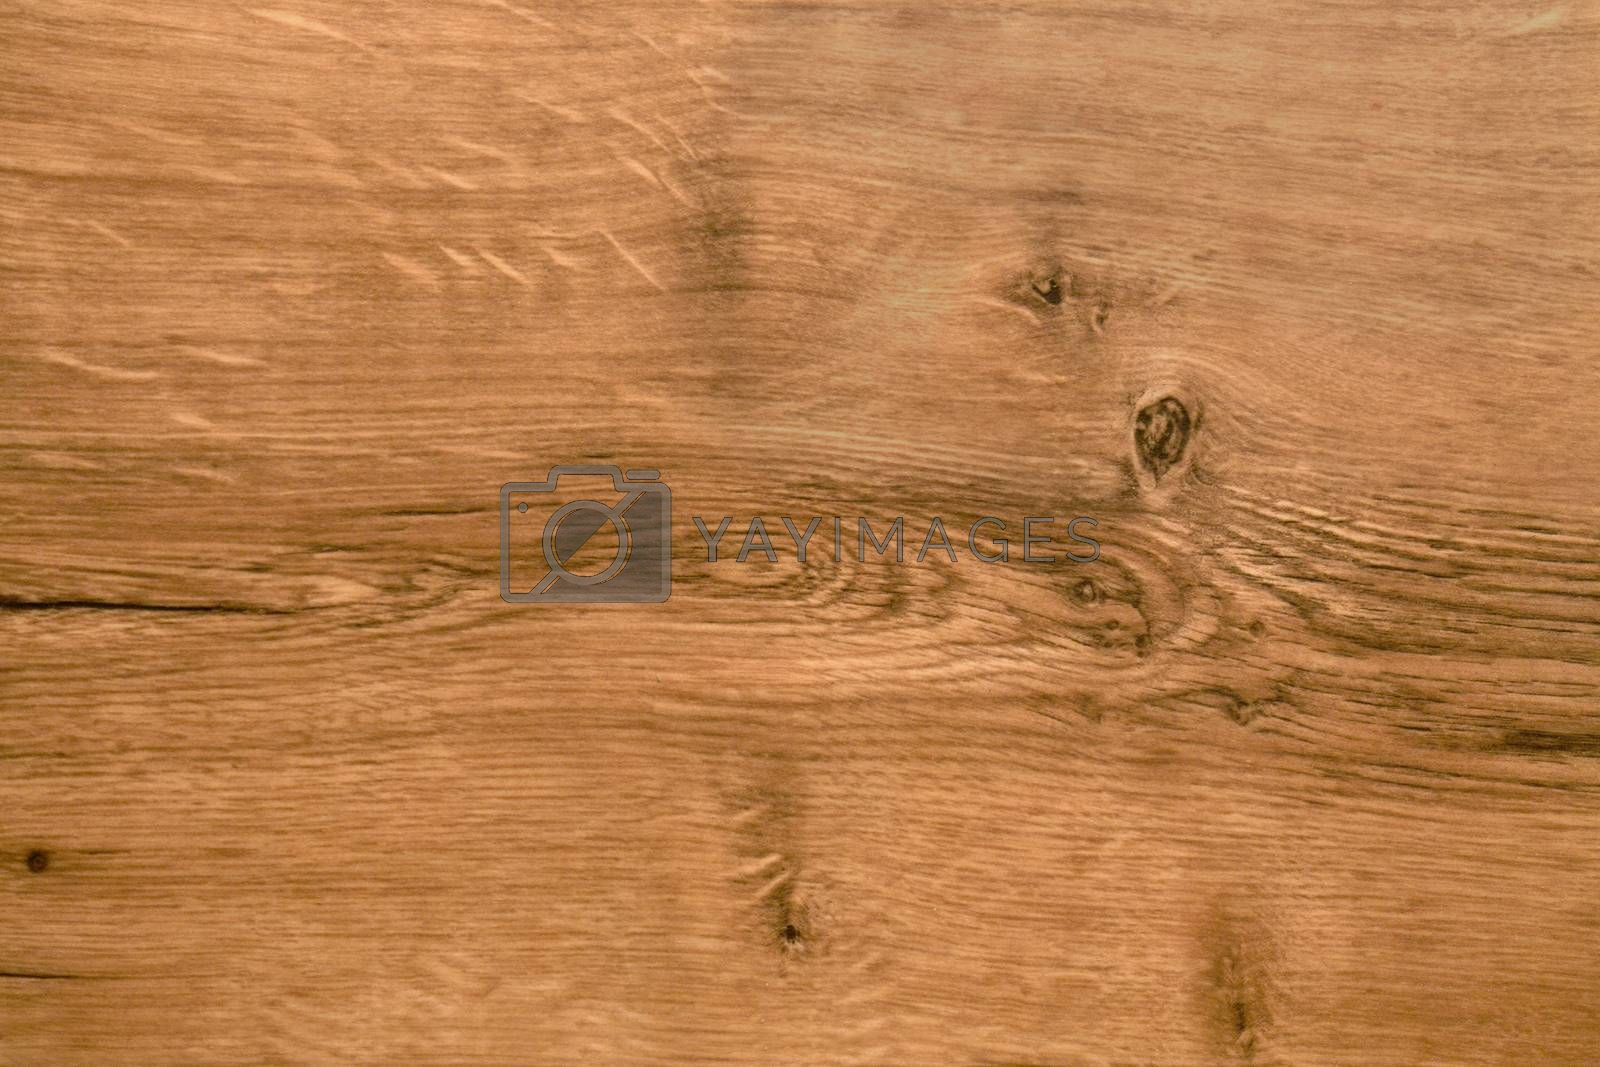 The texture of the wooden planks of the old pear